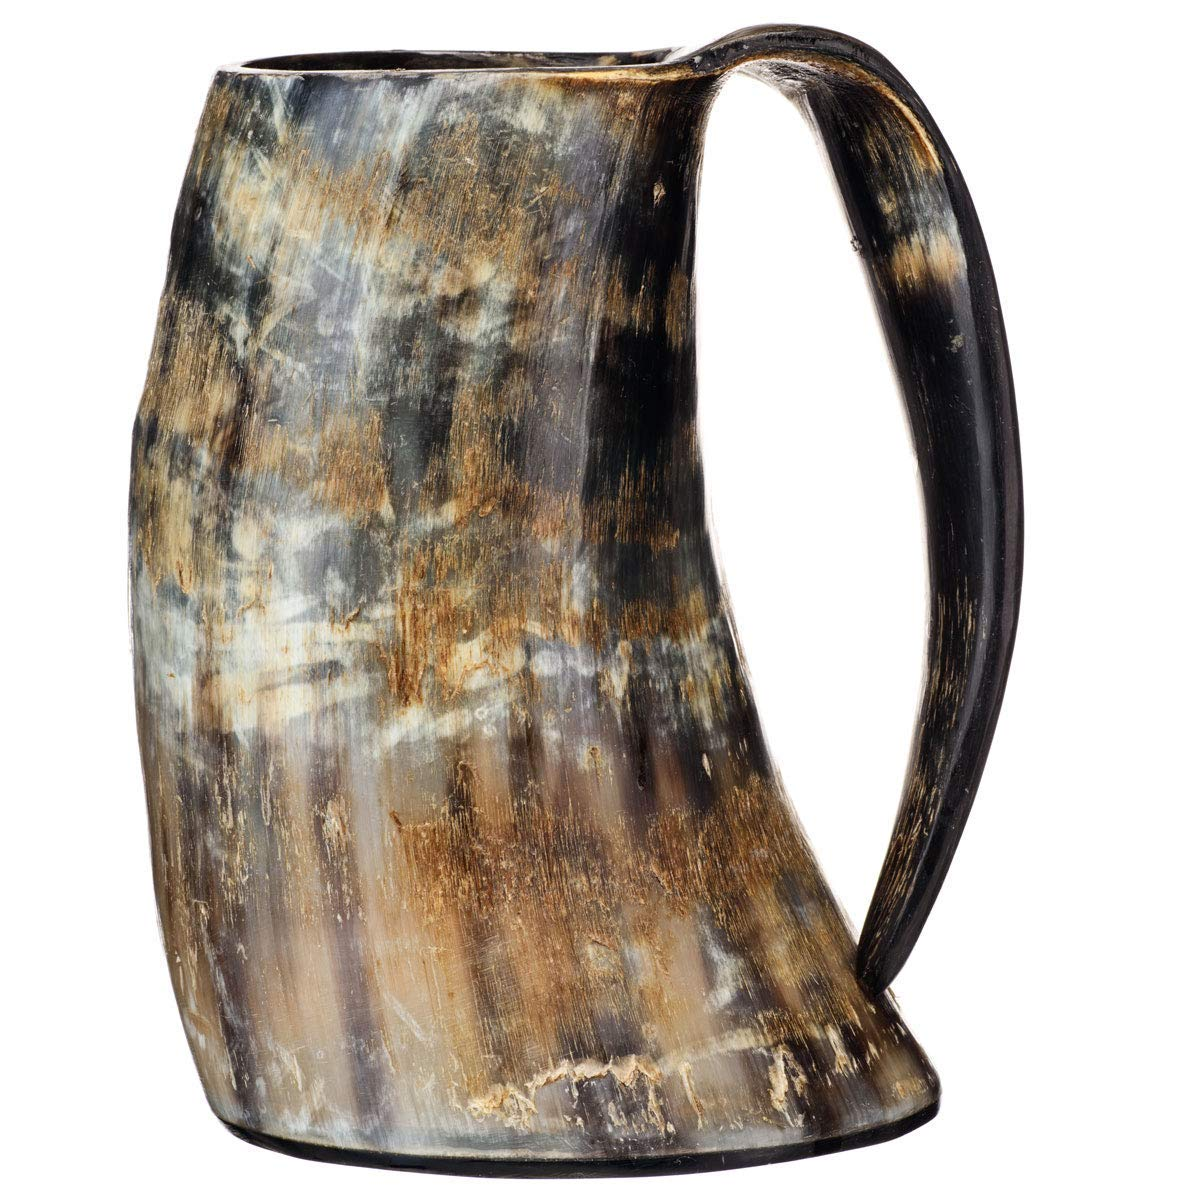 Naaz wood arts The Original Handcrafted Authentic Viking Drinking Horn XXL 1 Liter Tankard for Beer, Mead, Ale - Medieval Inspired Stein Mug - Food Safe Vessel With Handle. 36oz